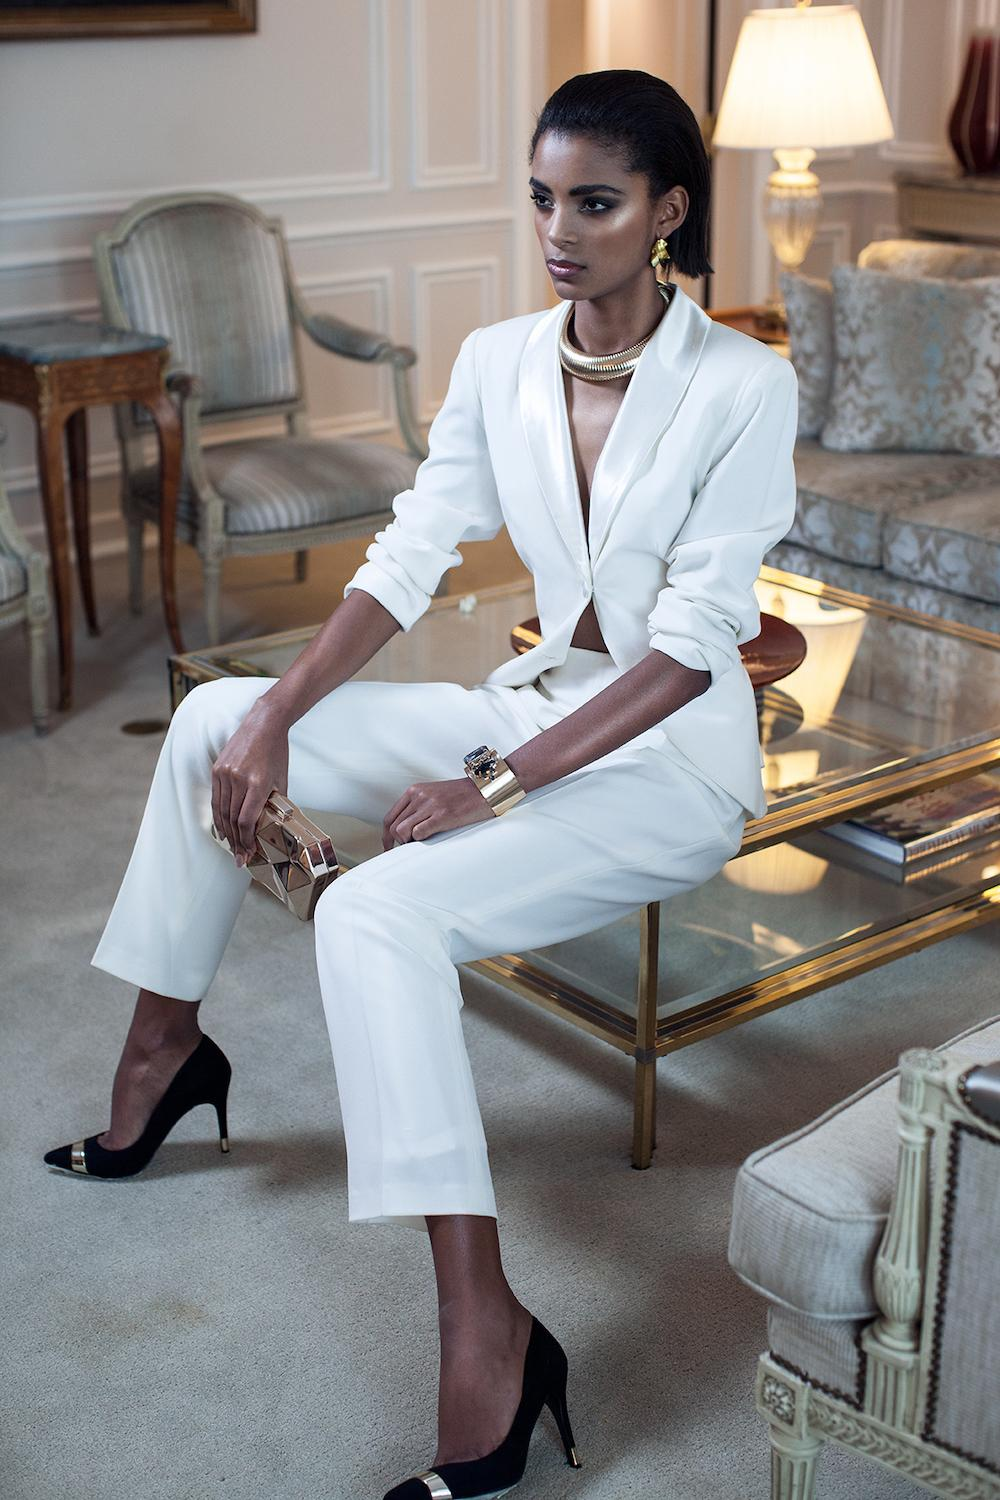 White elegant classic women's suit. Business outfit for spring-summer season